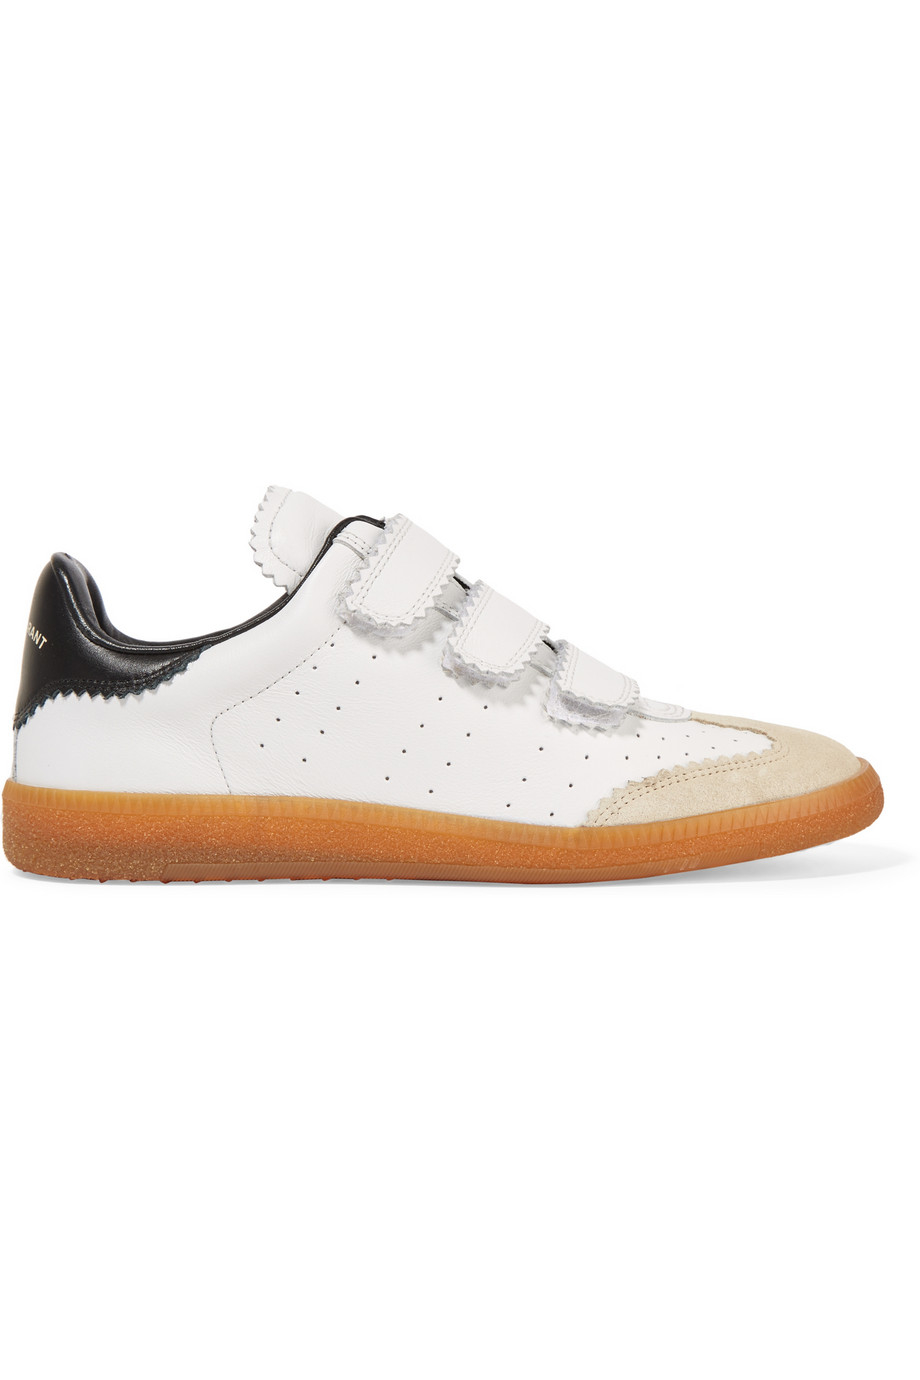 marant 201 toile beth perforated leather sneakers in